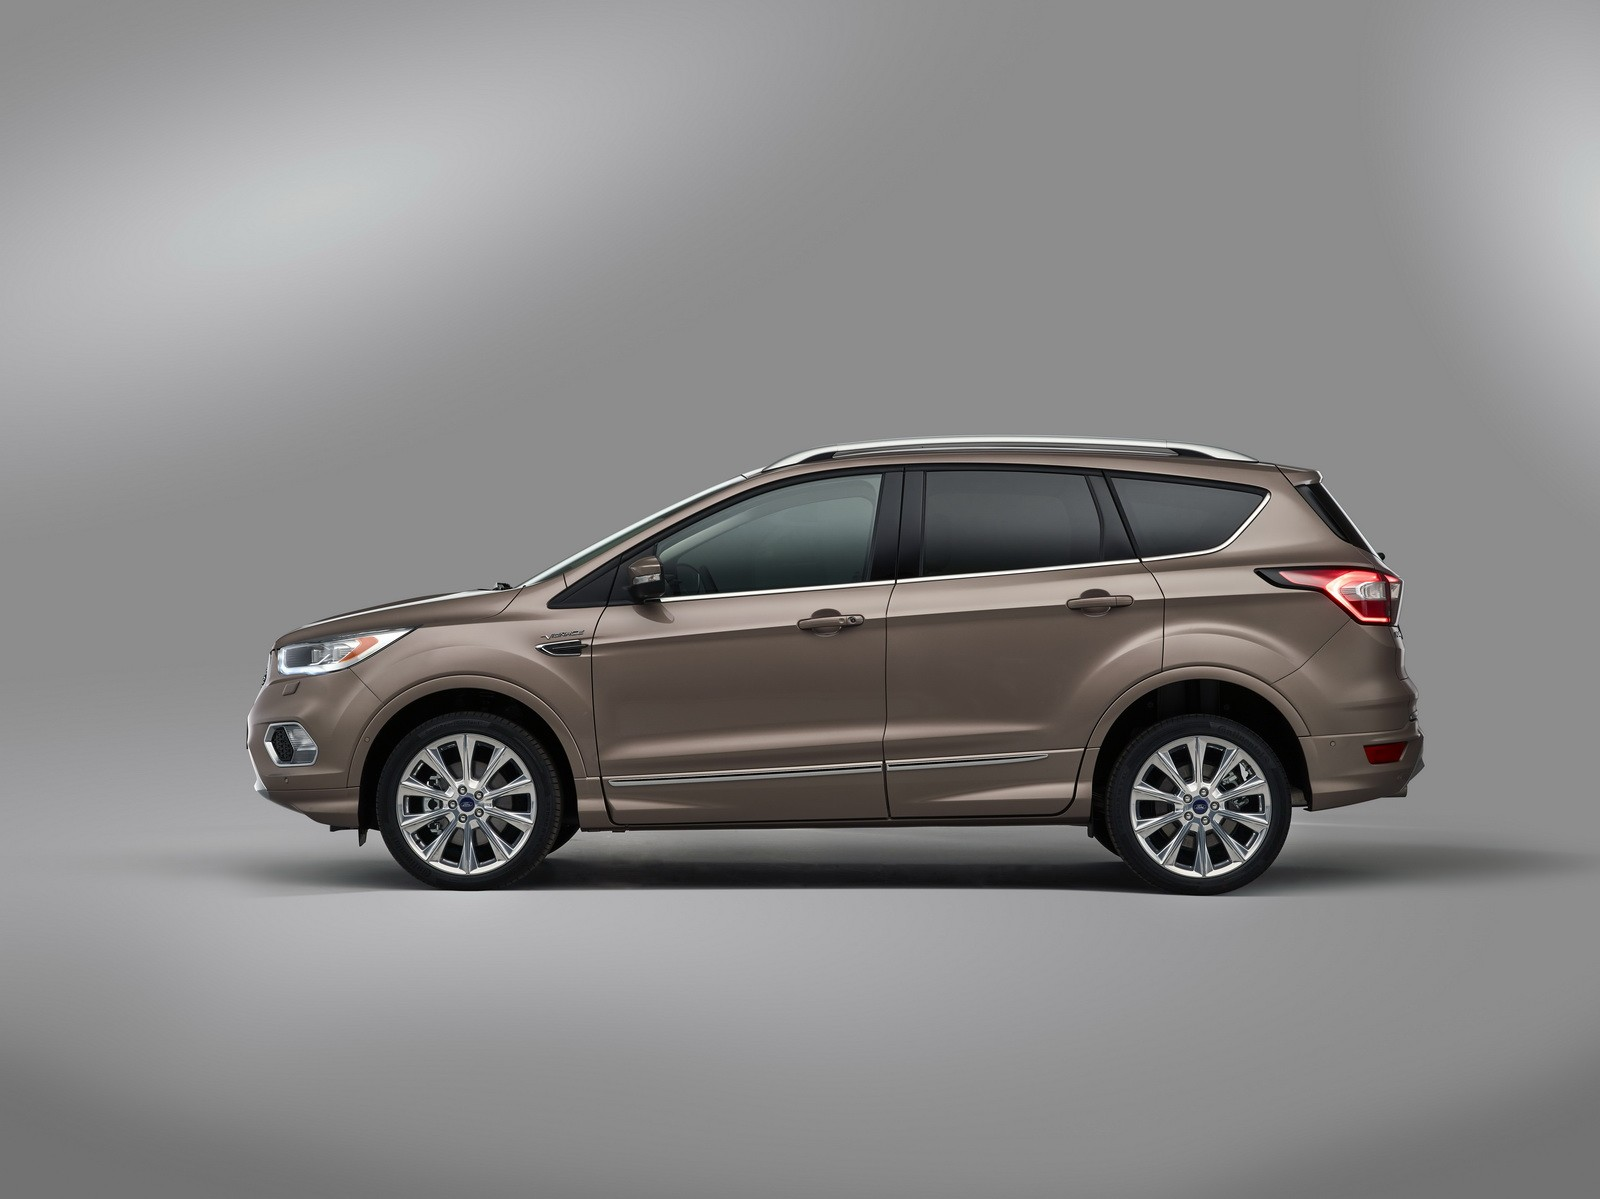 ford kuga vignale puts a luxury twist on the compact suv. Black Bedroom Furniture Sets. Home Design Ideas